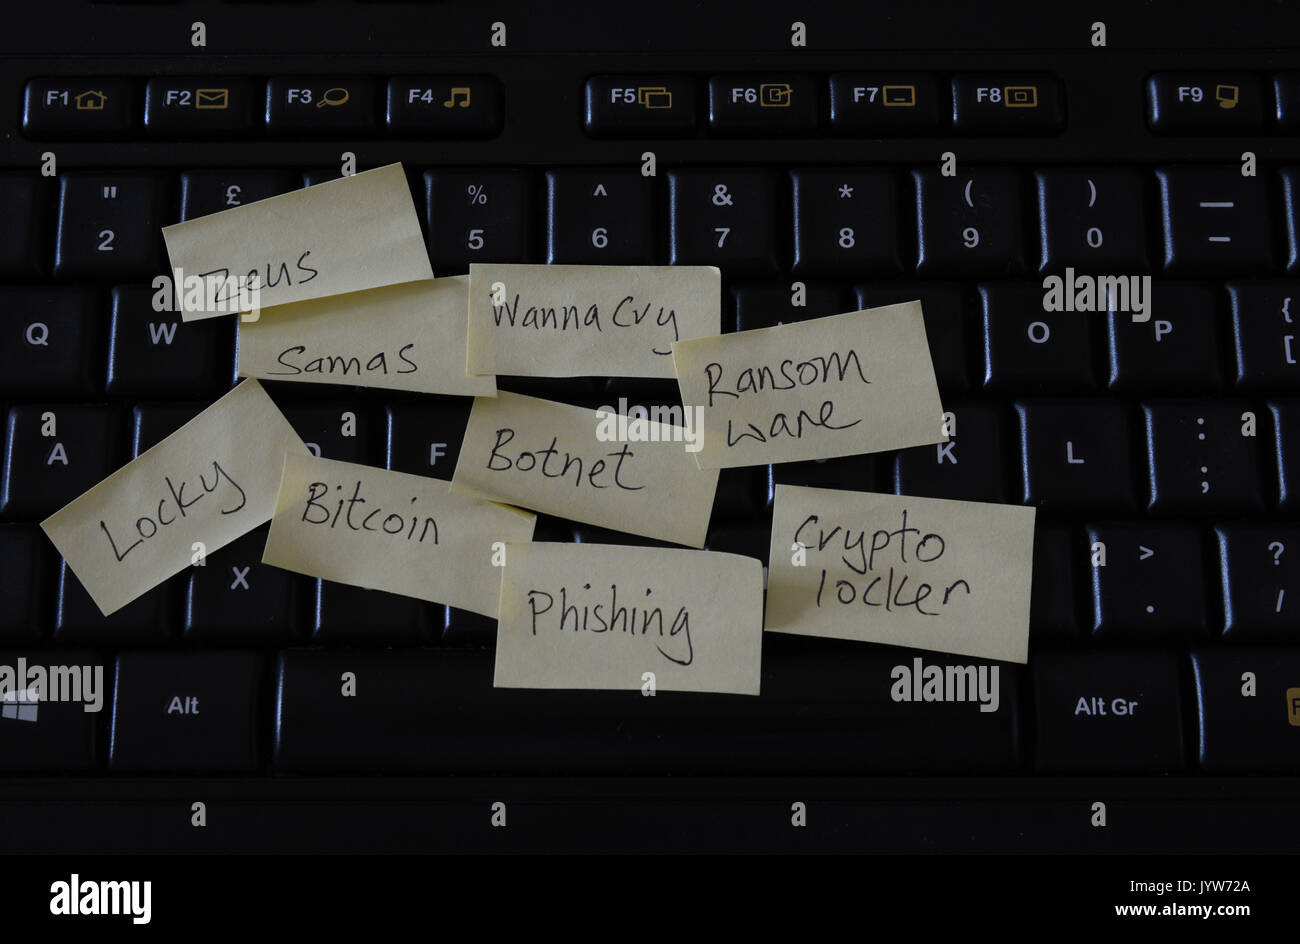 Computer keyboard with post it notes of ransomware and computer threats - Stock Image